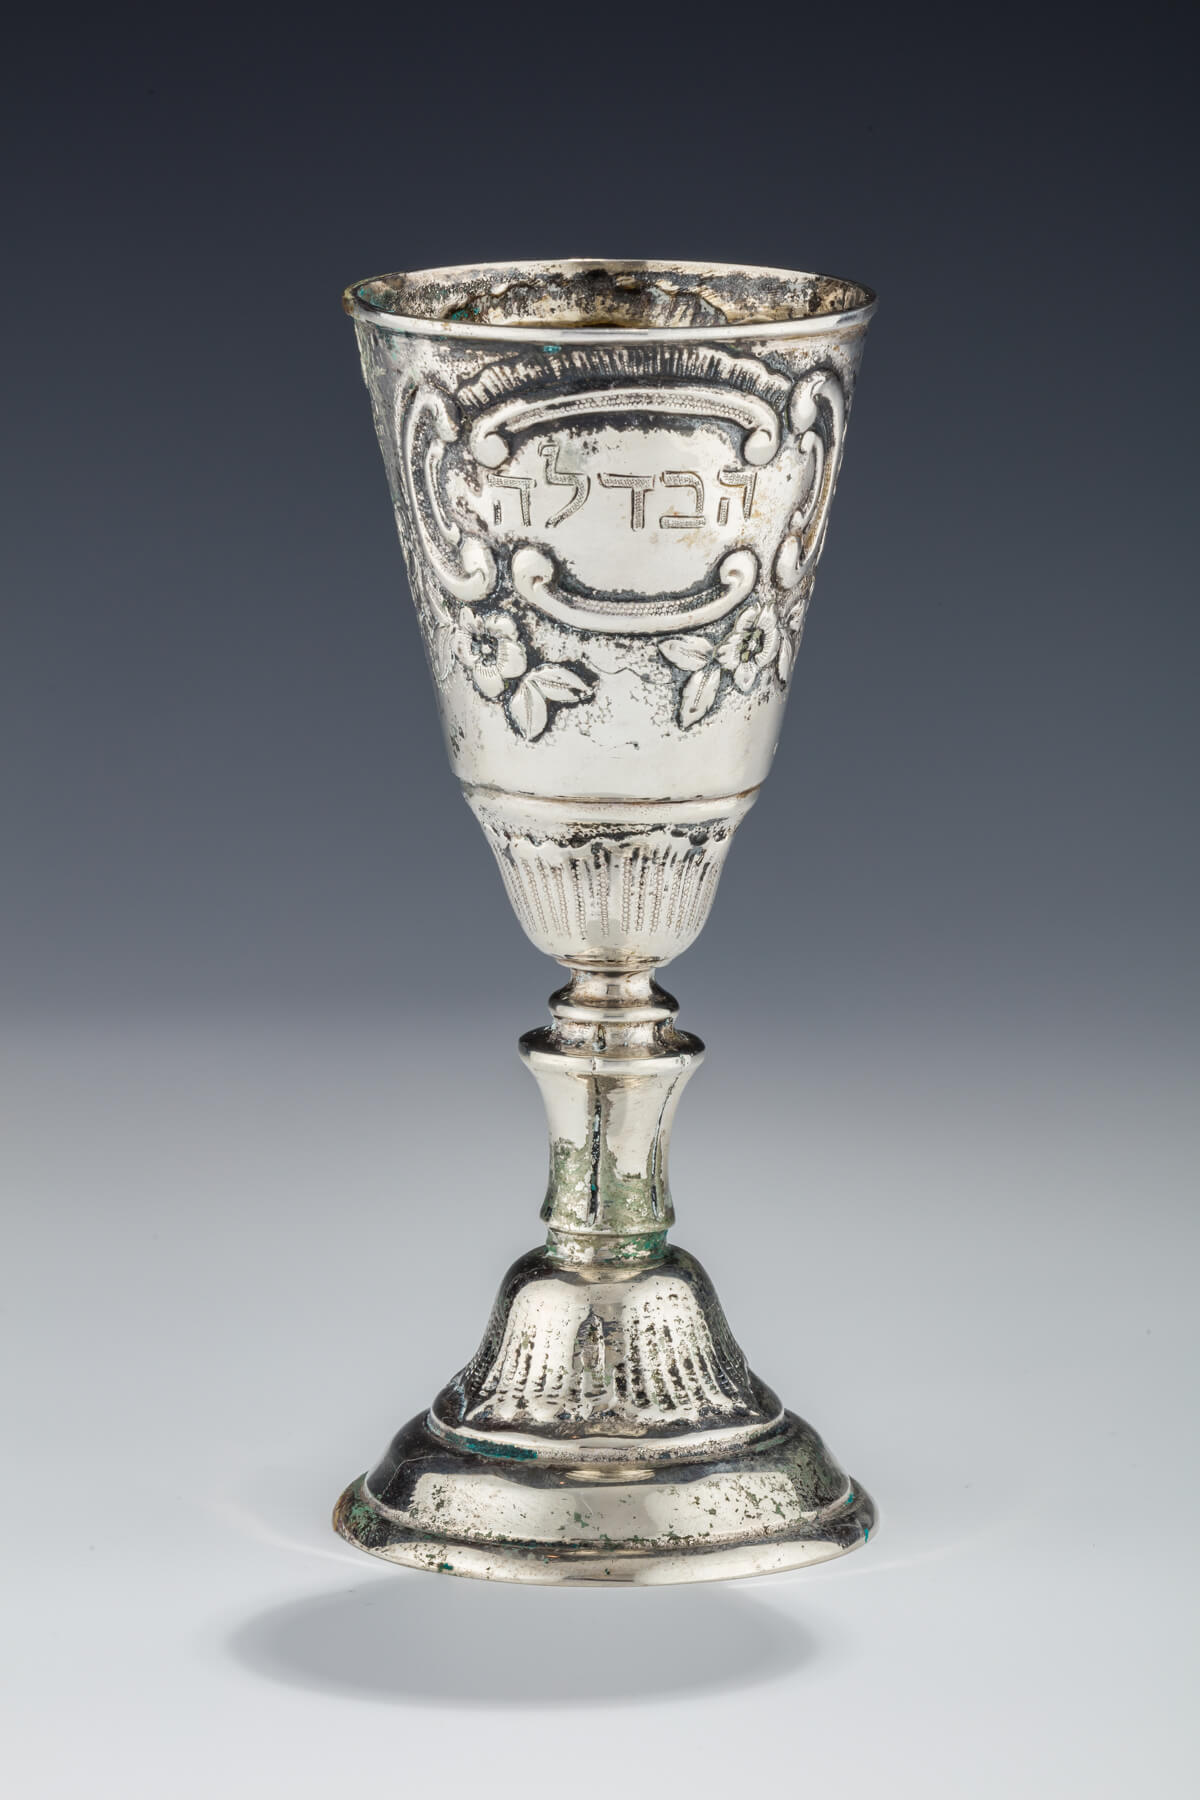 022. A Large Silver Kiddush Goblet